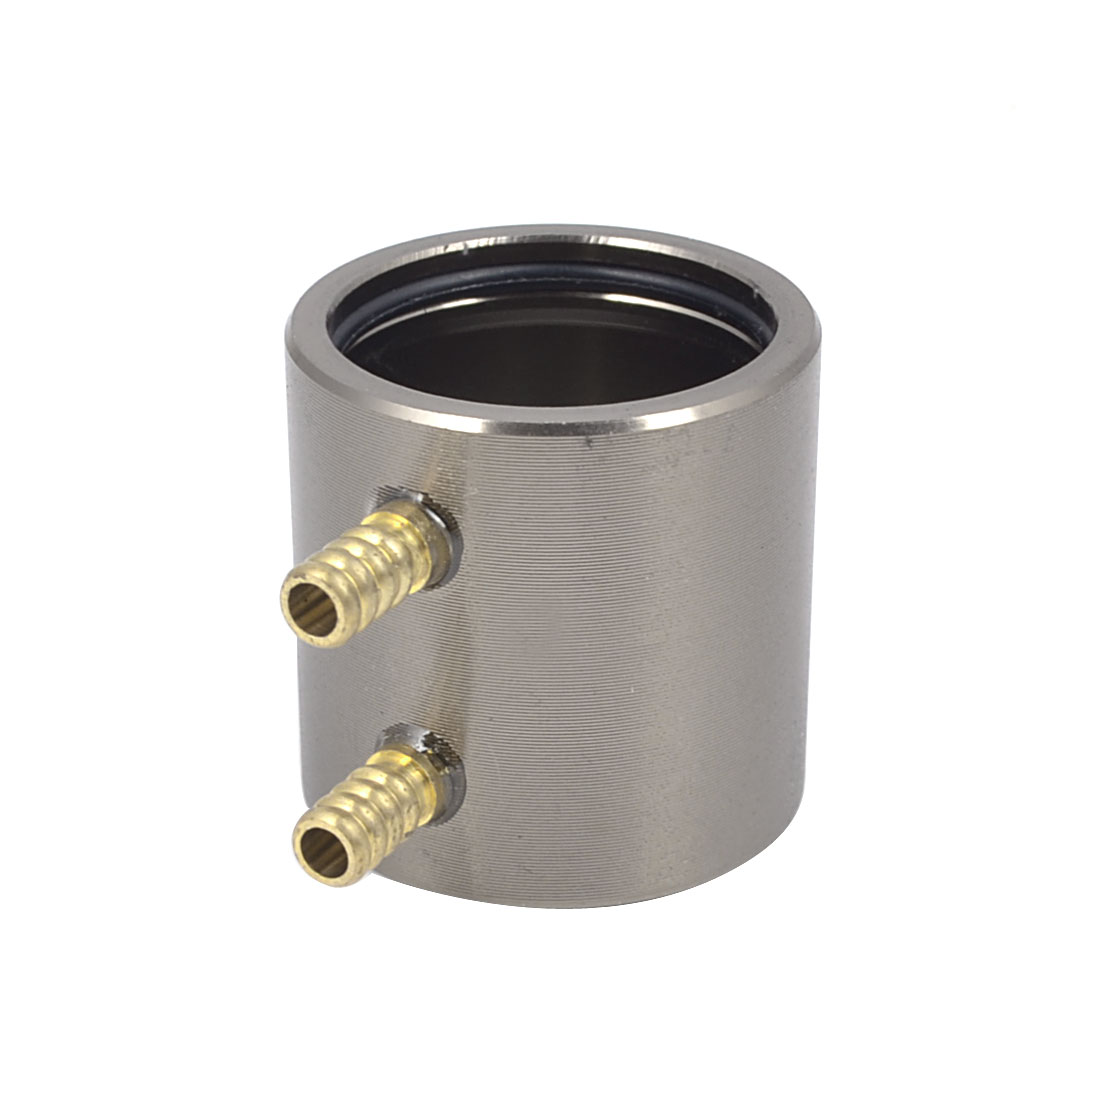 20mm x 25mm Aluminum Brown Anodized Water Cooling Jacket Radiator for RC Boat B20 Brushless Motor